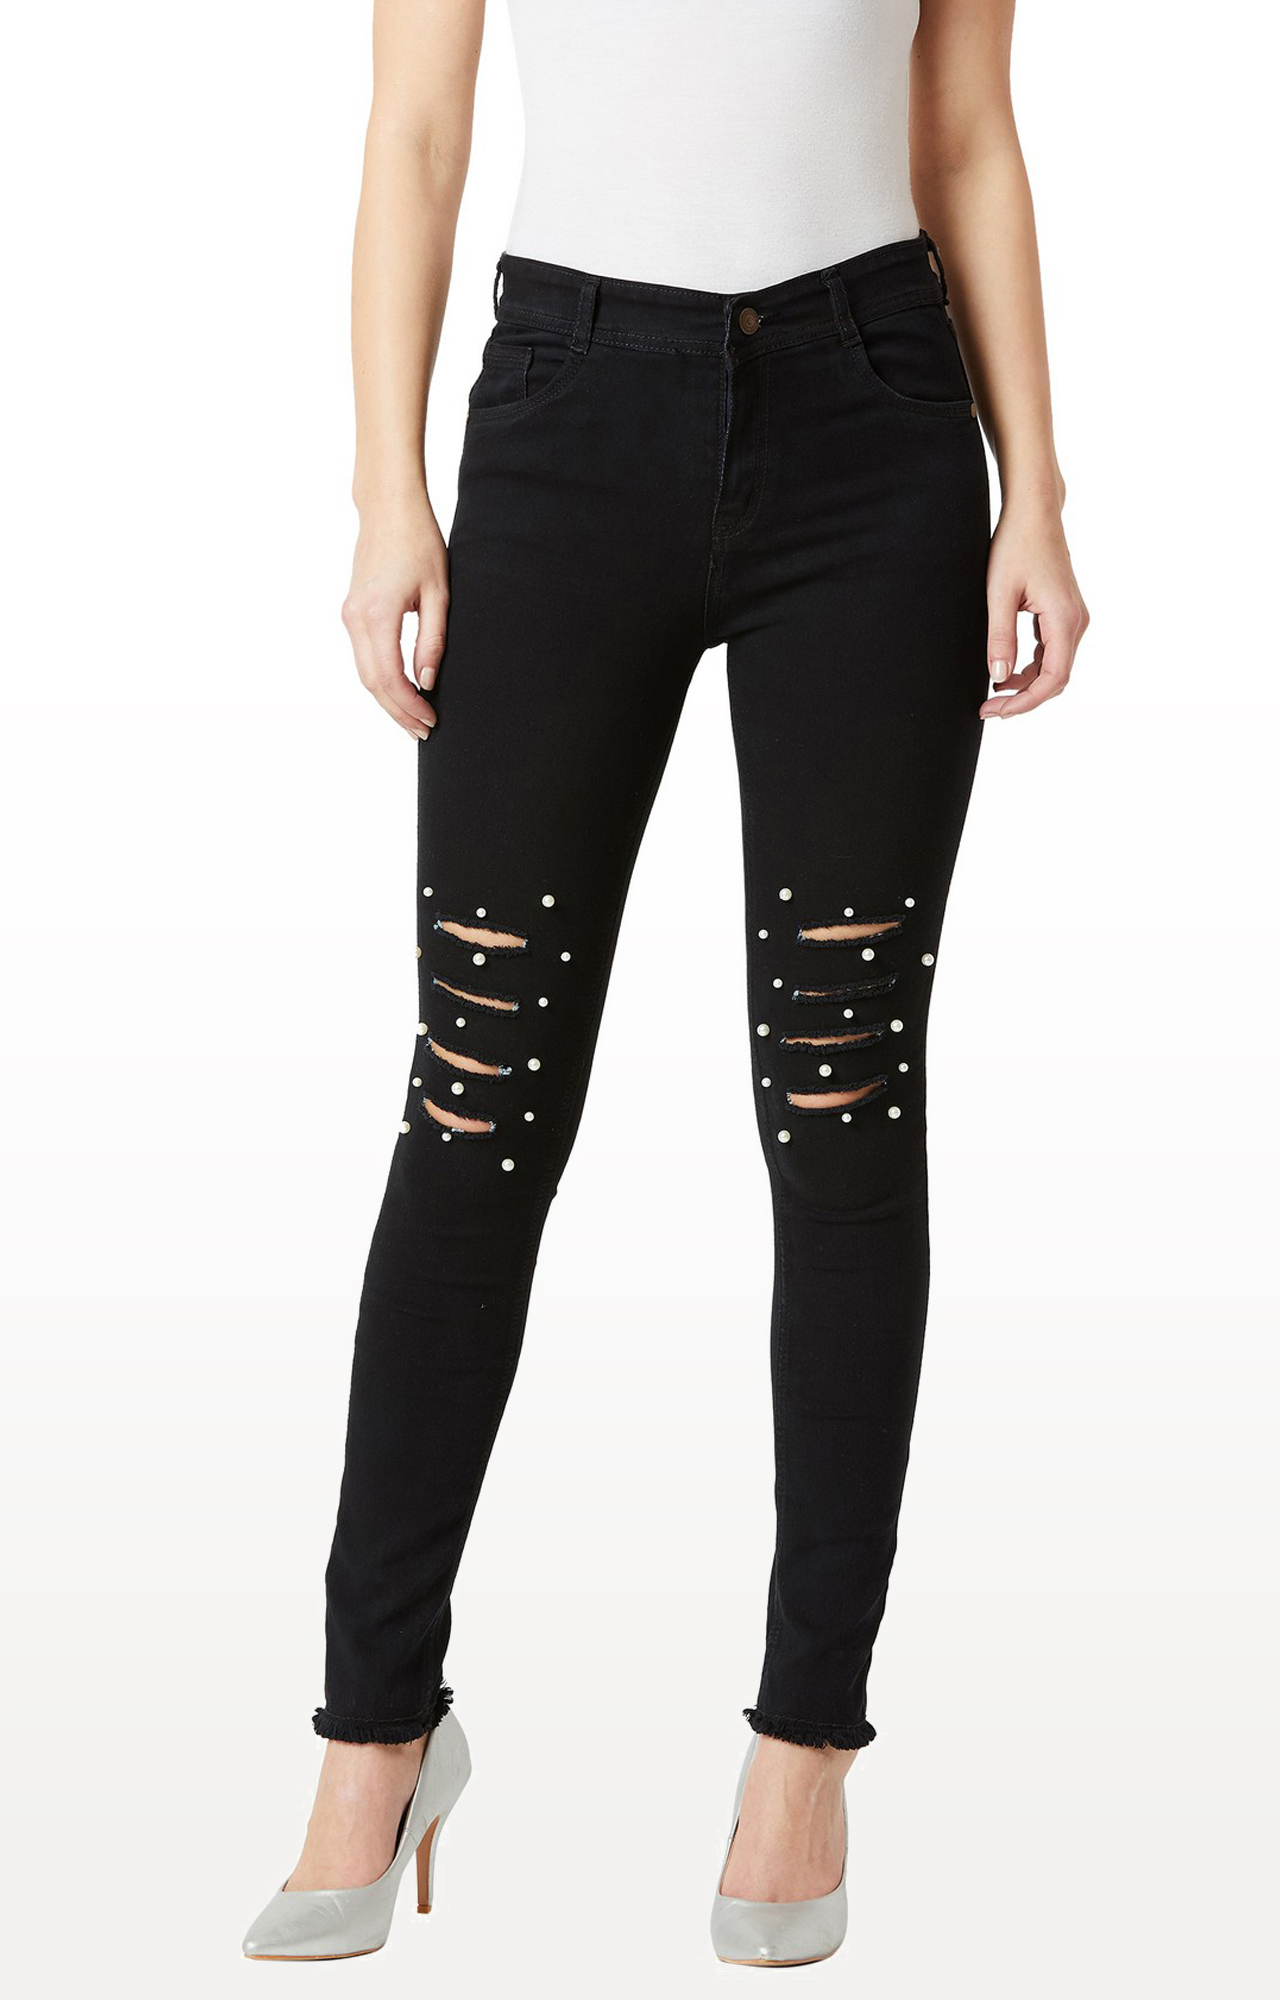 MISS CHASE | Black Ripped Tapered Jeans